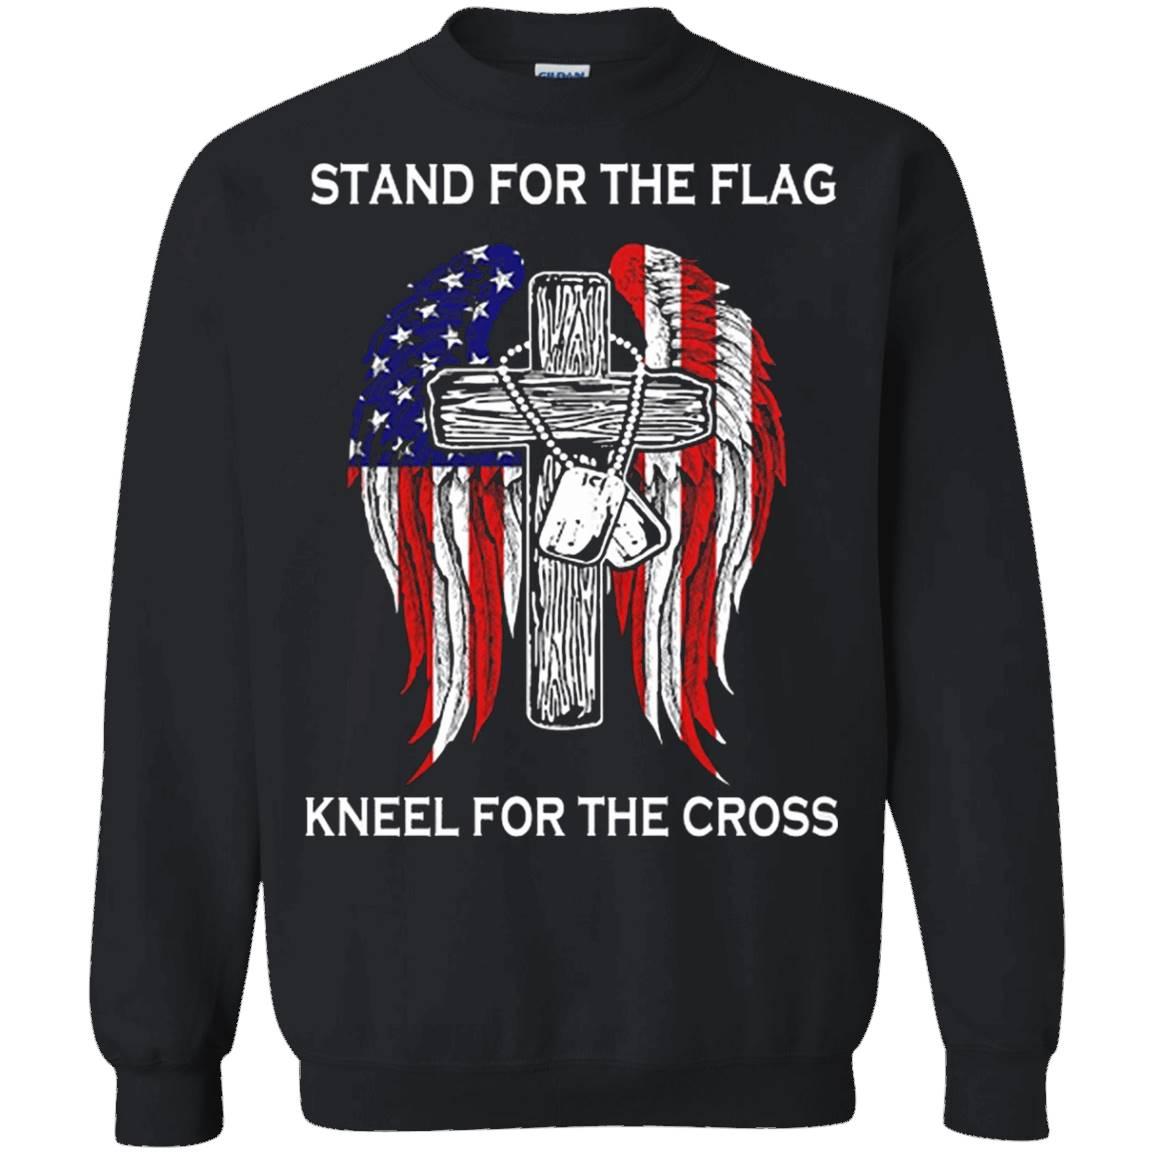 Stand For The Flag Kneel For The Cross T-Shirt – Sweatshirt